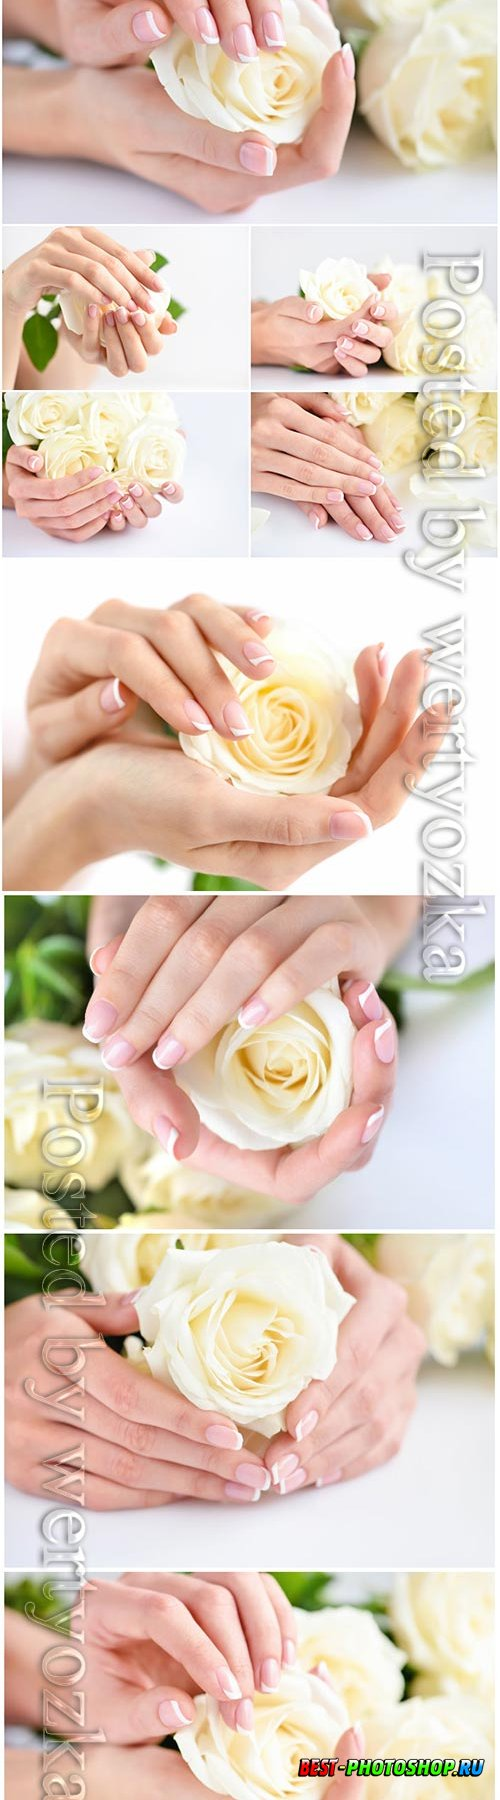 Hands of a woman with beautiful french manicure